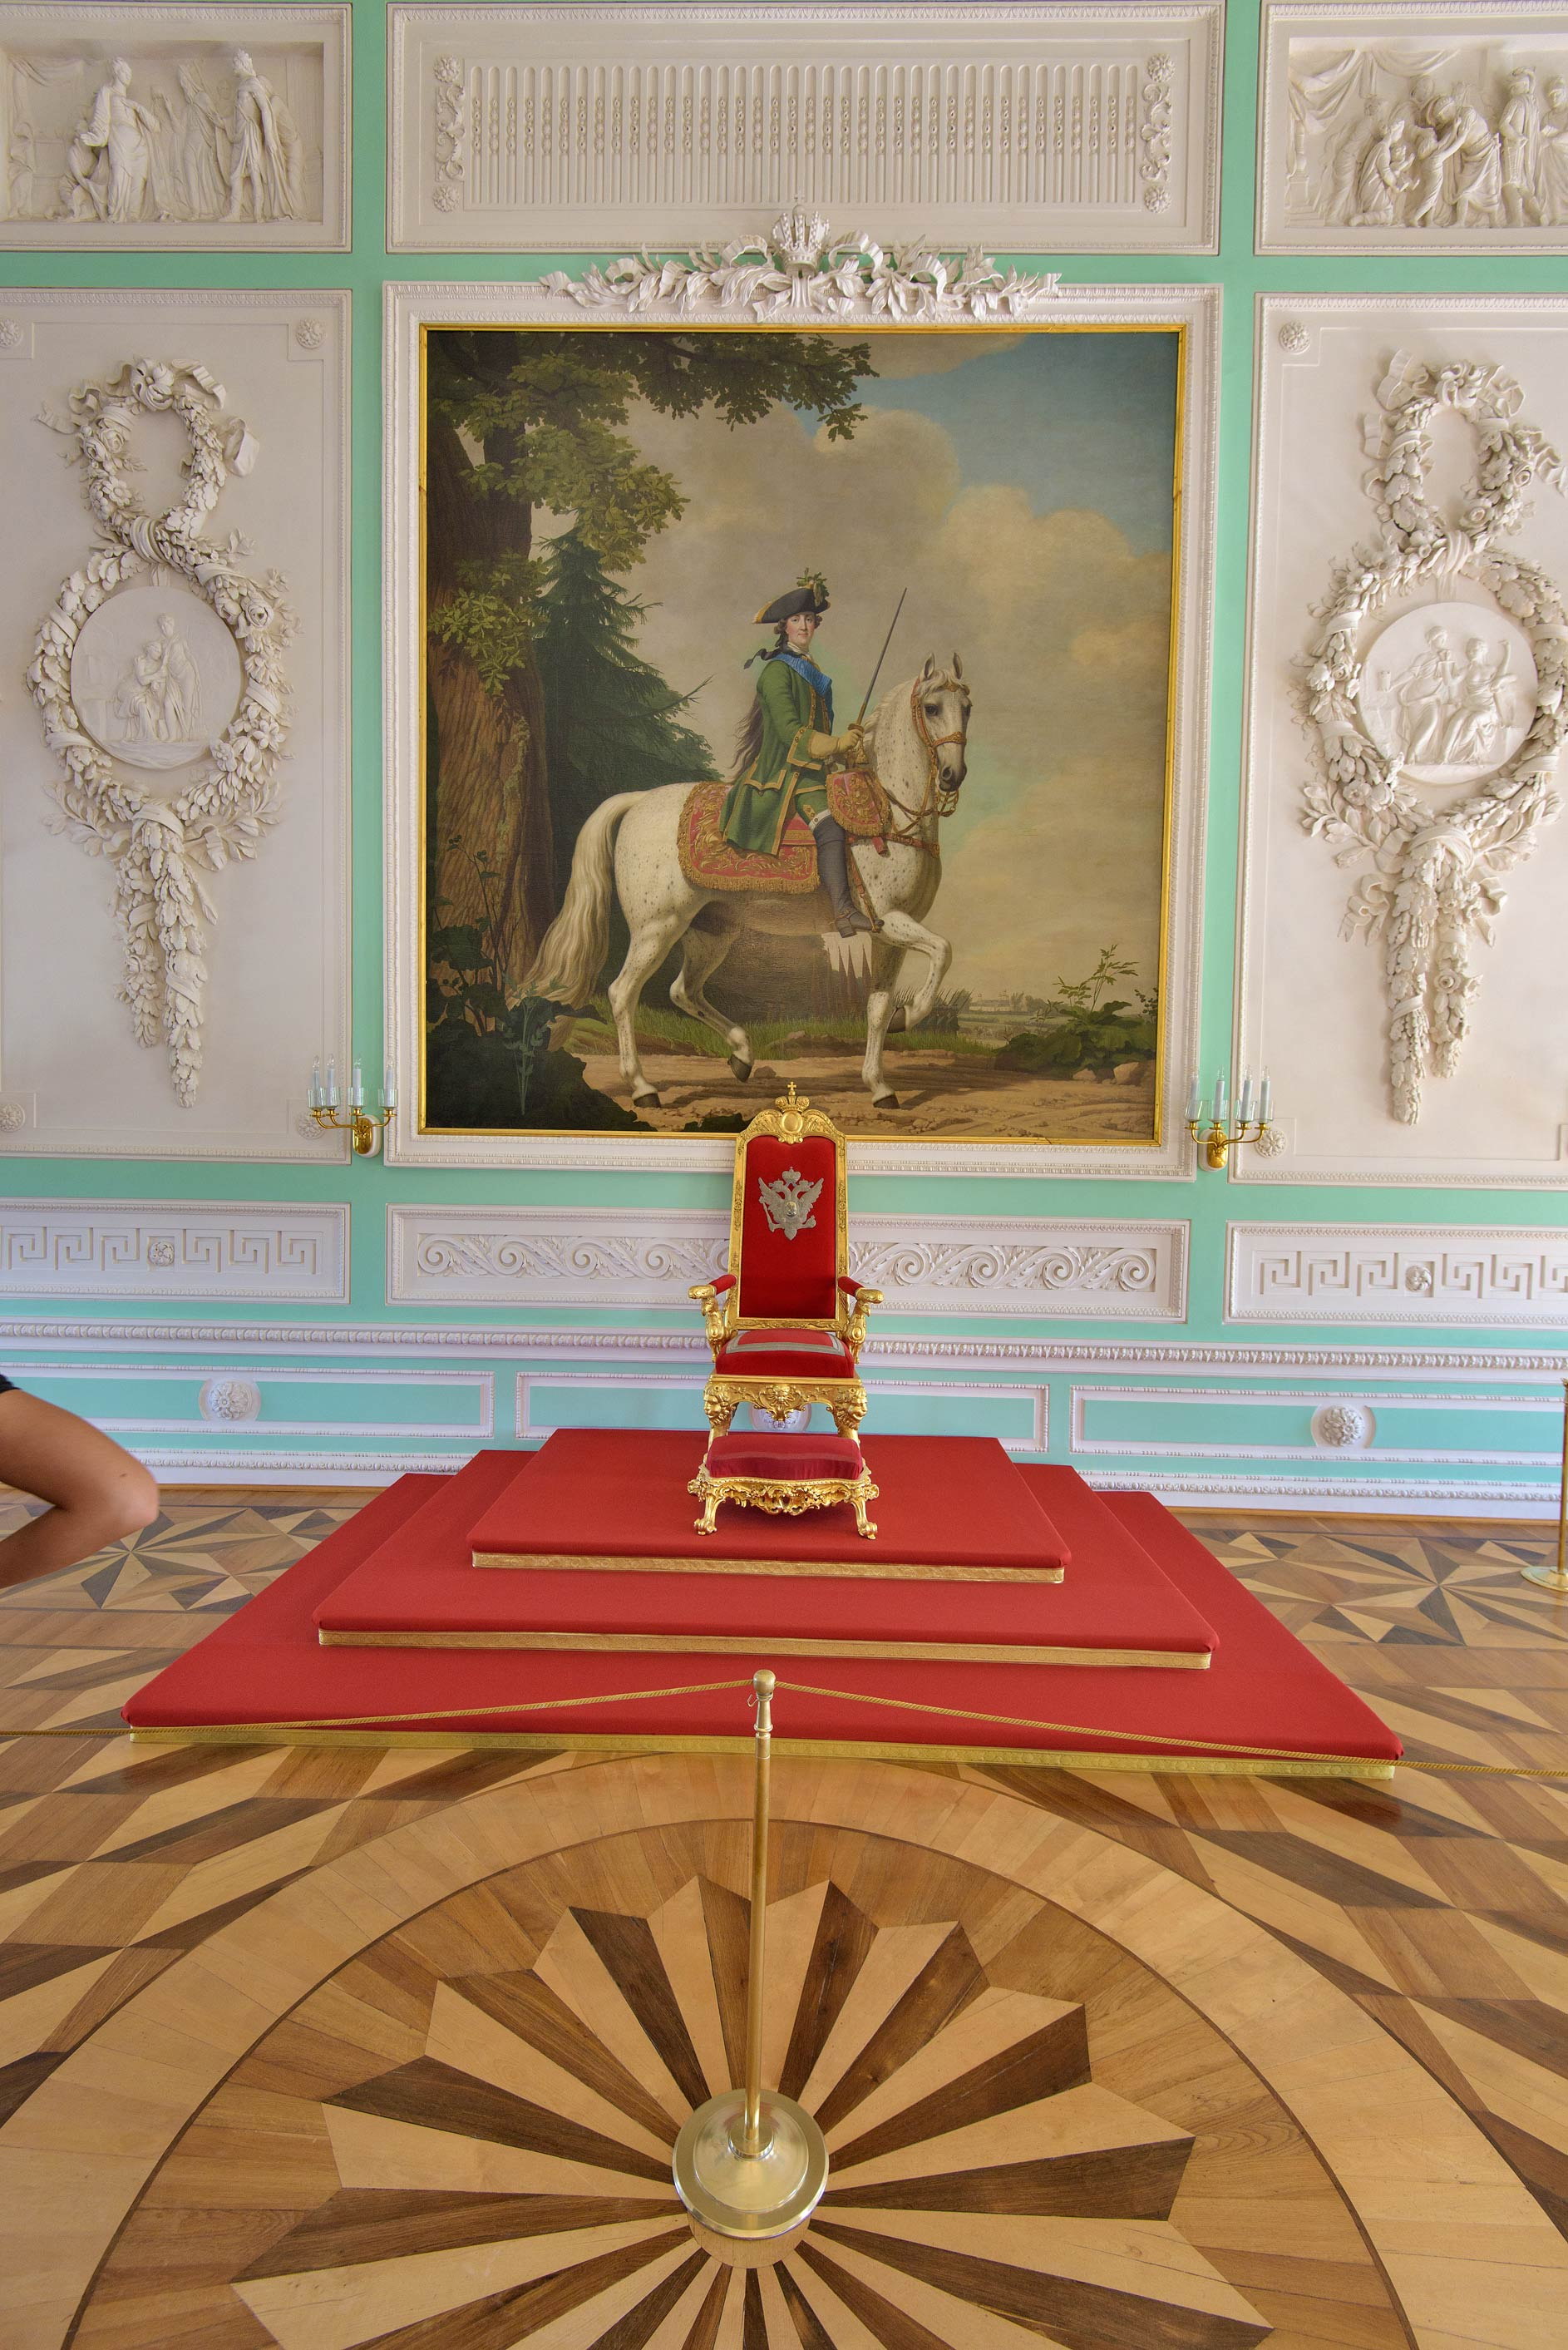 Throne hall in Grand Palace. Peterhof, a suburb of St.Petersburg, Russia